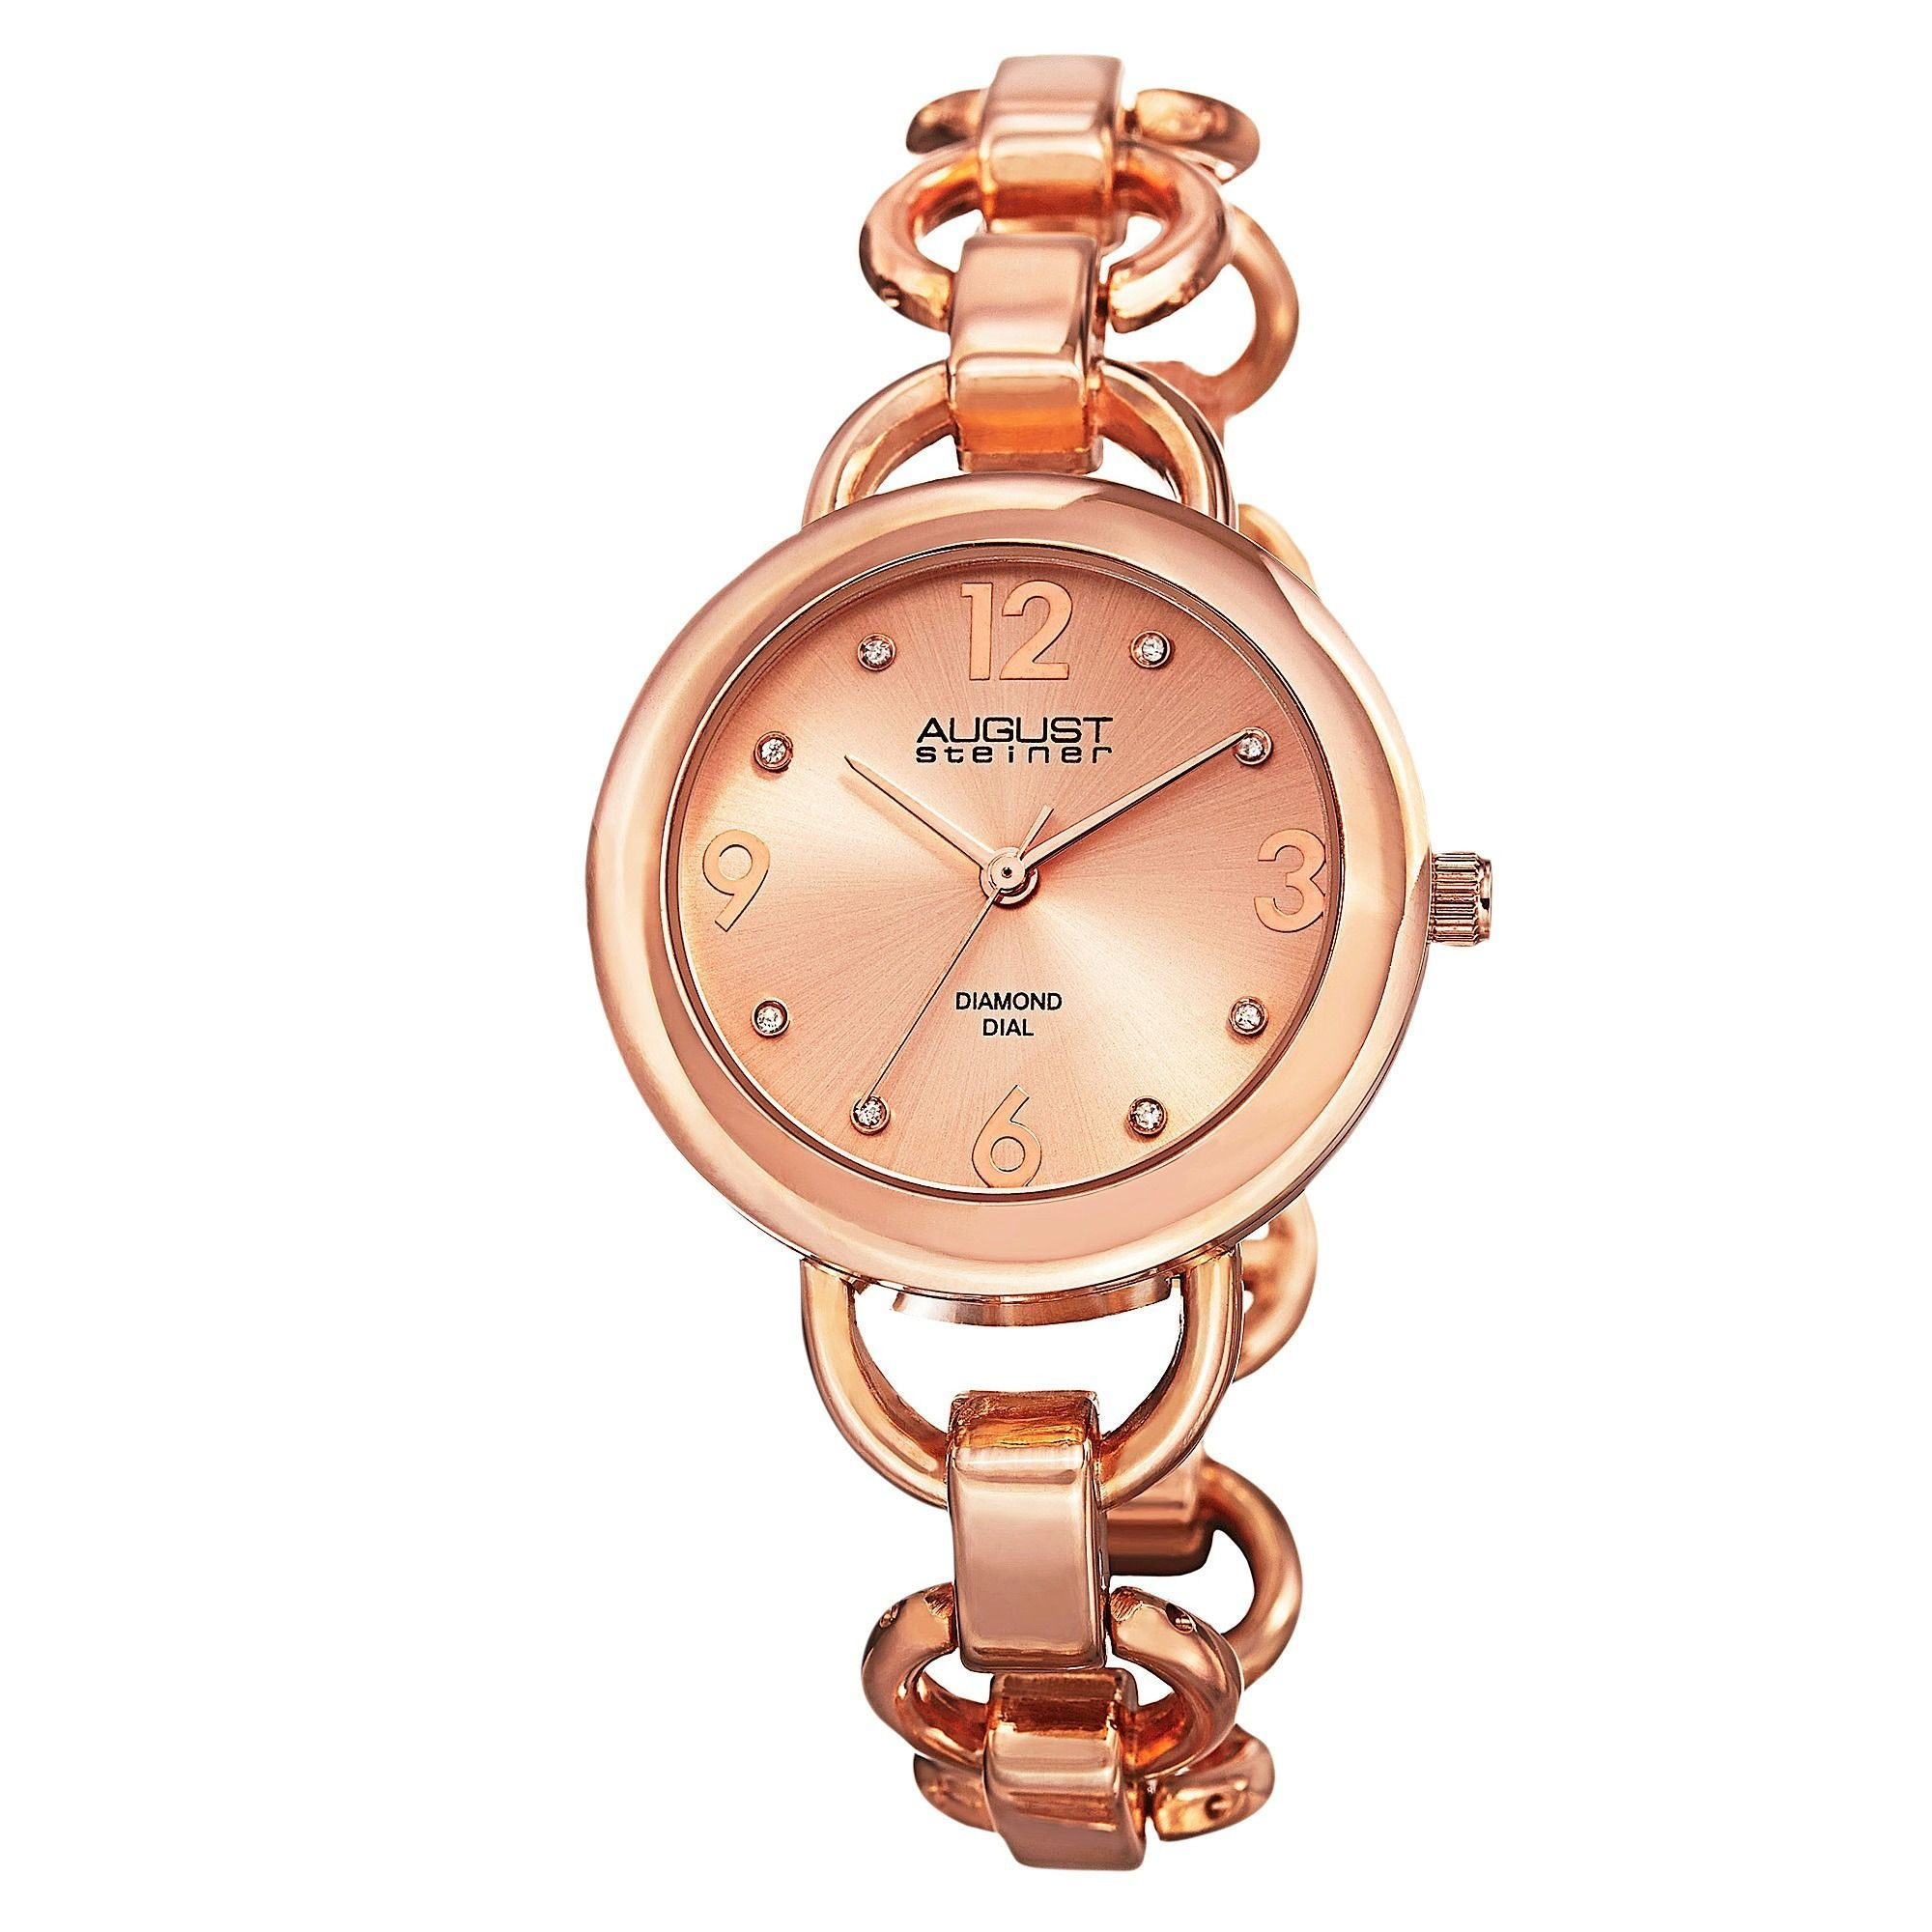 em link watches premiere full gold watch luxe chain products chanel plated